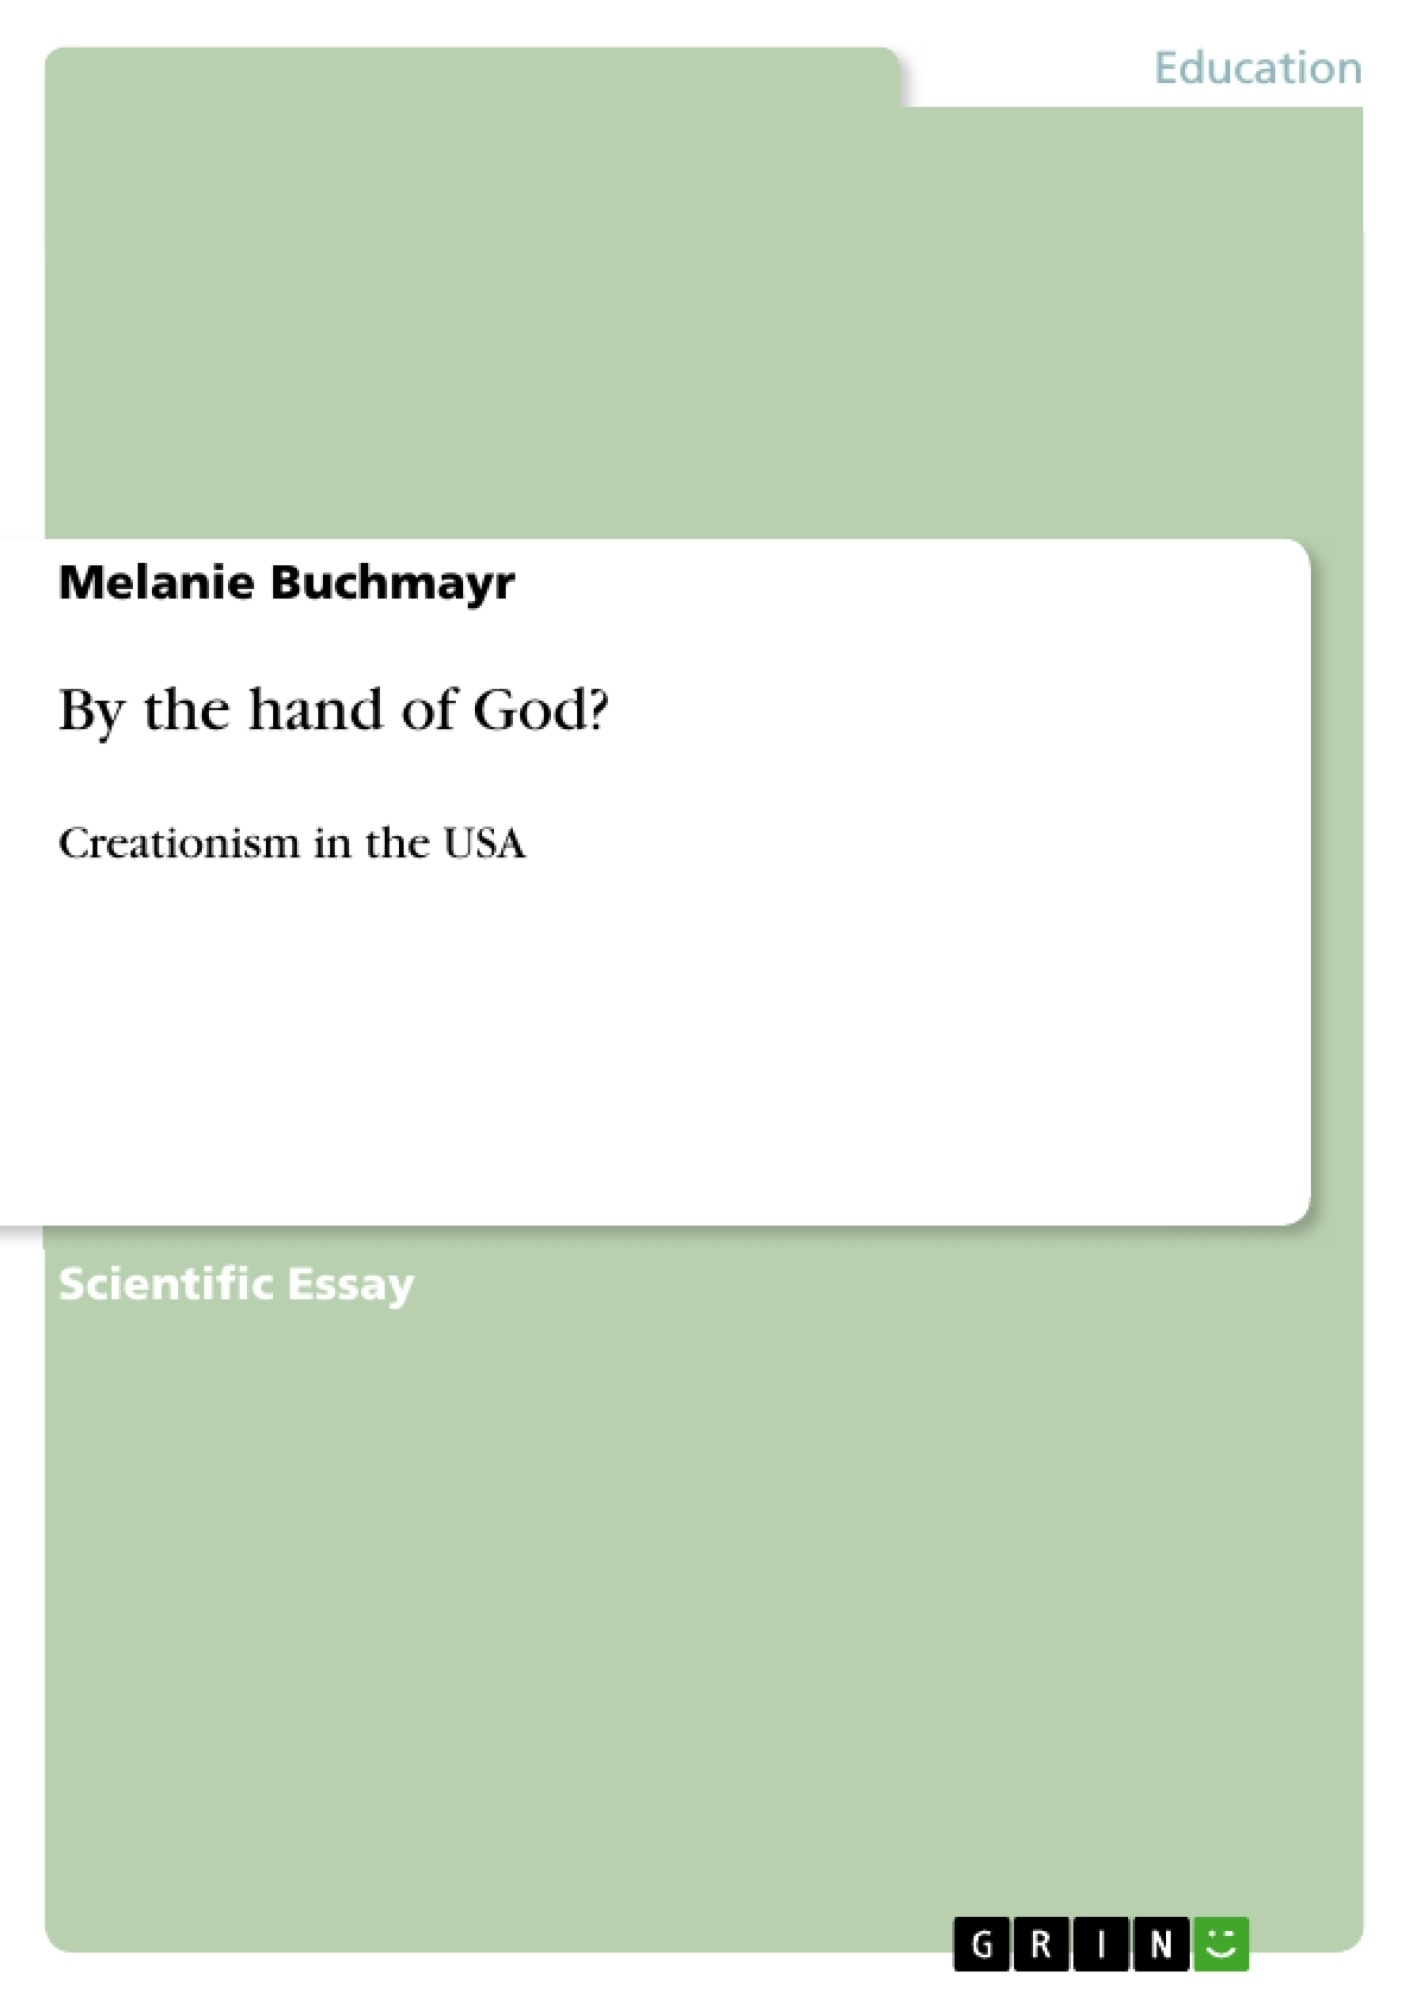 Title: By the hand of God?